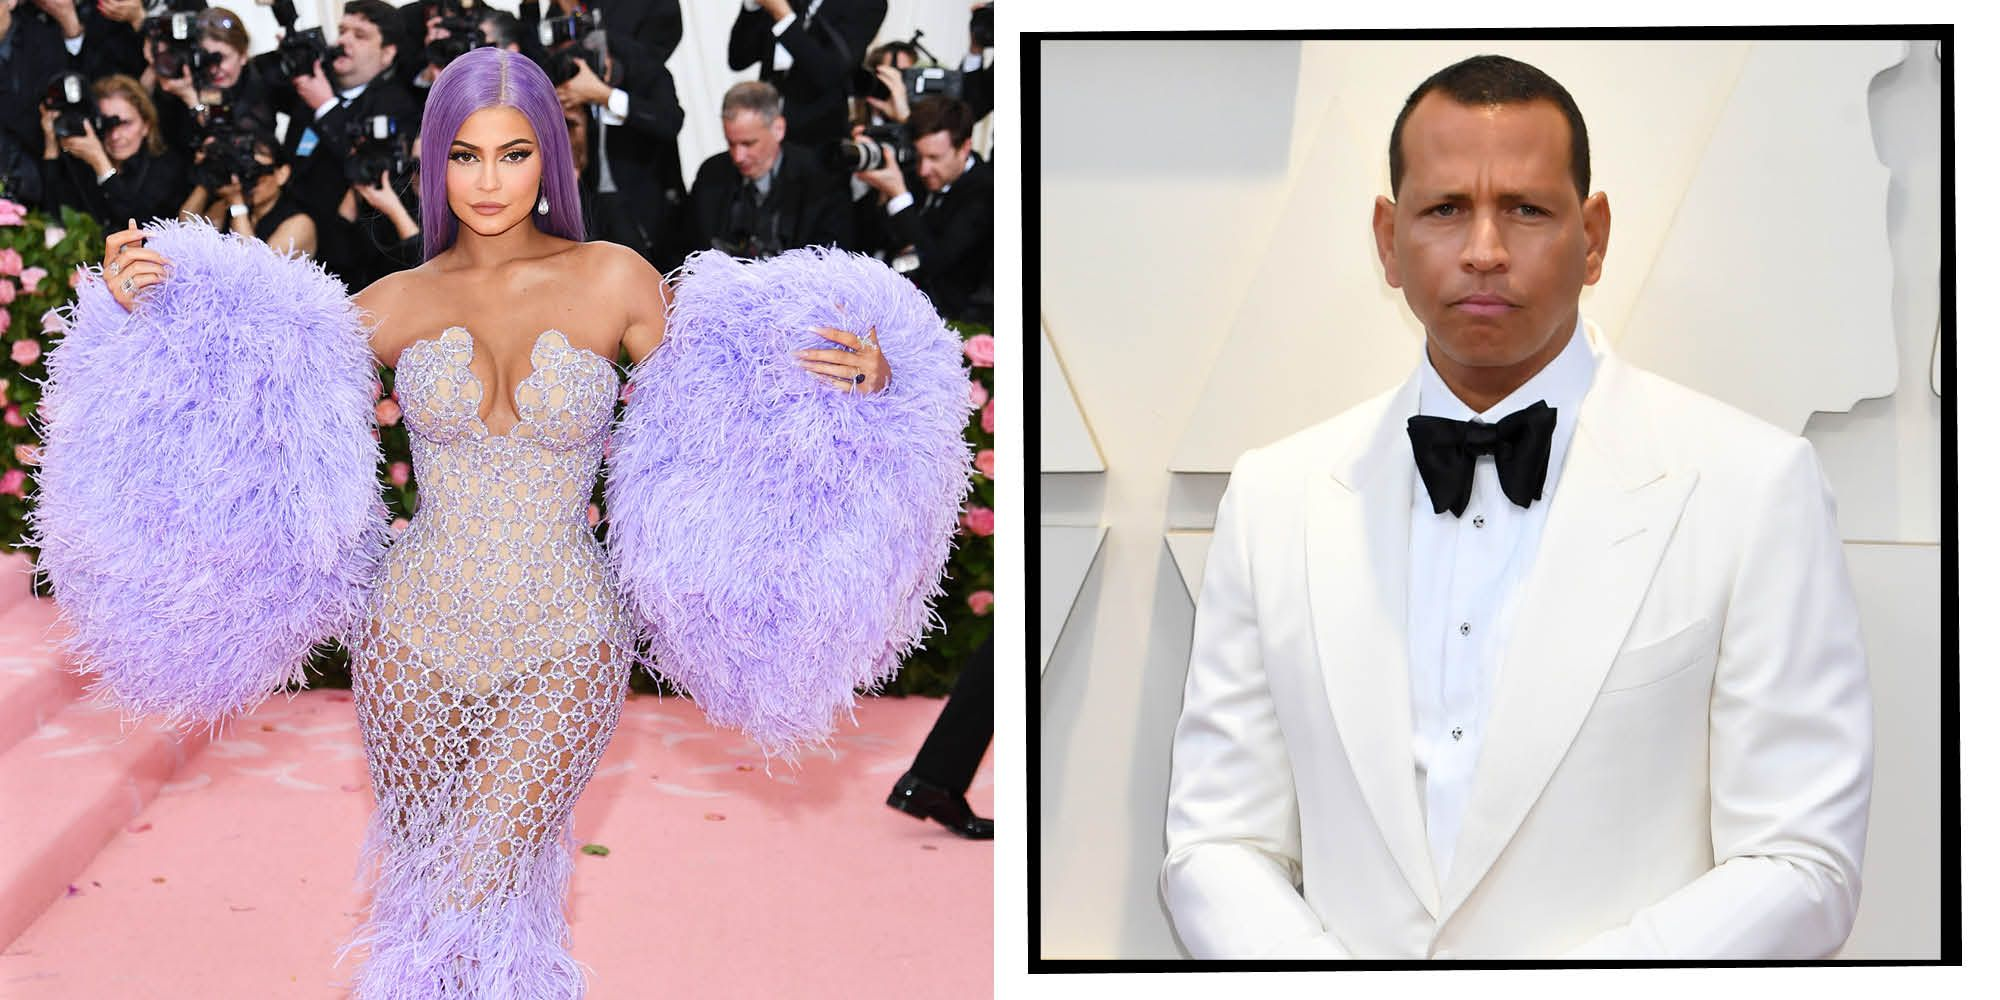 Alex Rodriguez Backtracks After Saying Kylie Jenner Talked About 'How Rich She Is' At The Met Gala